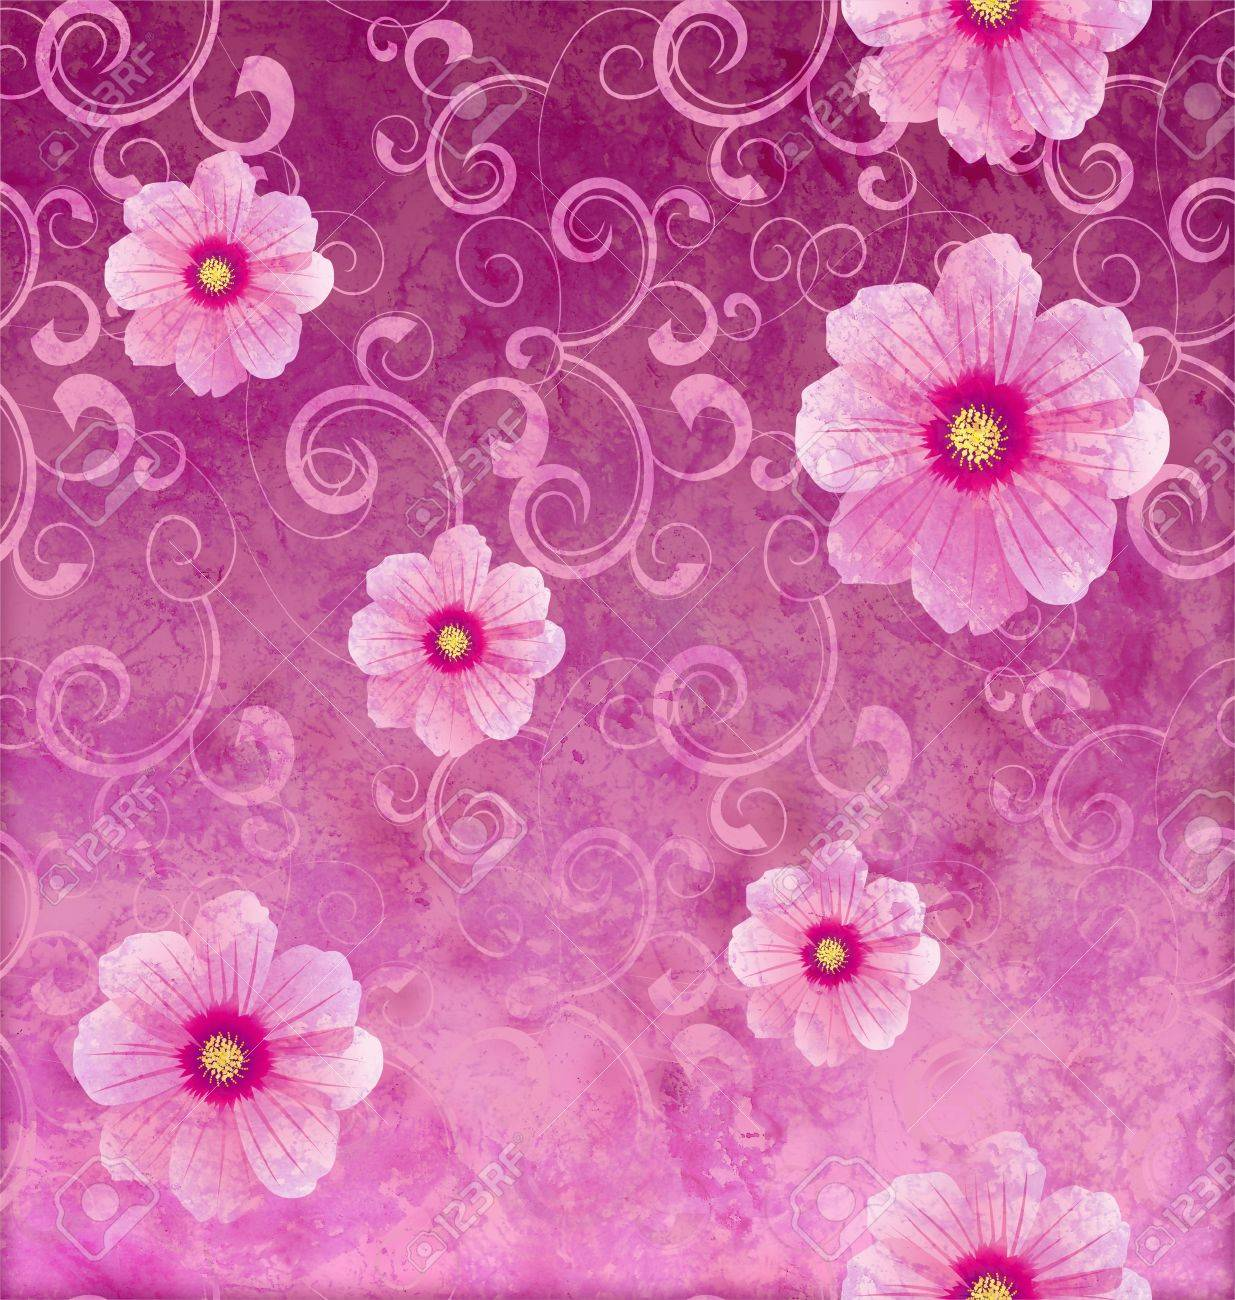 Pink Flowers Romantic Spring Vintage Background Love And Cute Stock